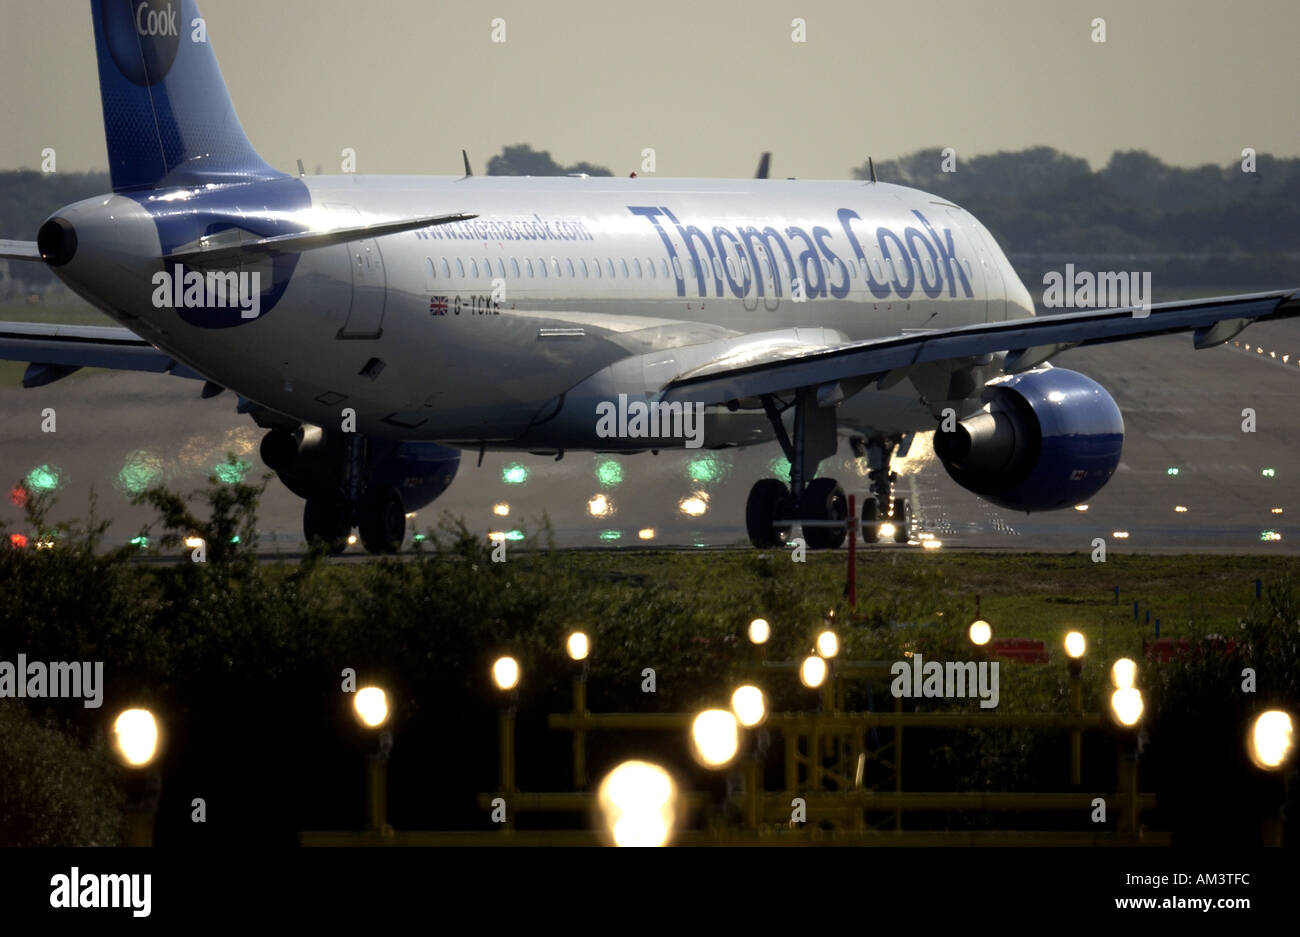 A Thomas Cook Airways Jet plane prepares for takeoff from London Gatwick airport - Stock Image